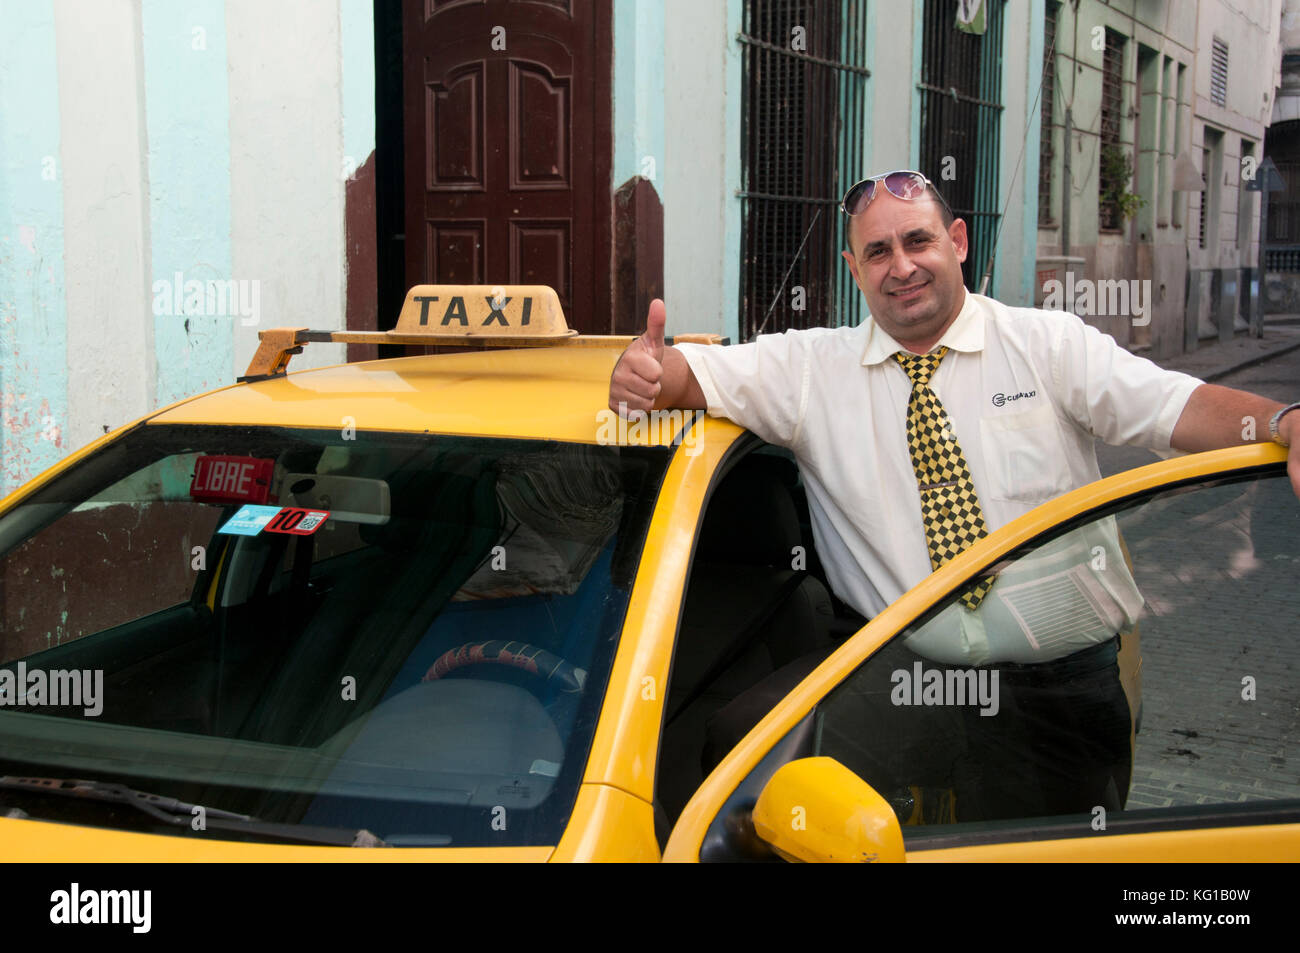 Official Tourist Taxi & Taxi Driver in Uniform in the Back Streets of Old Havana, Habana Vieja, Cuba - Stock Image